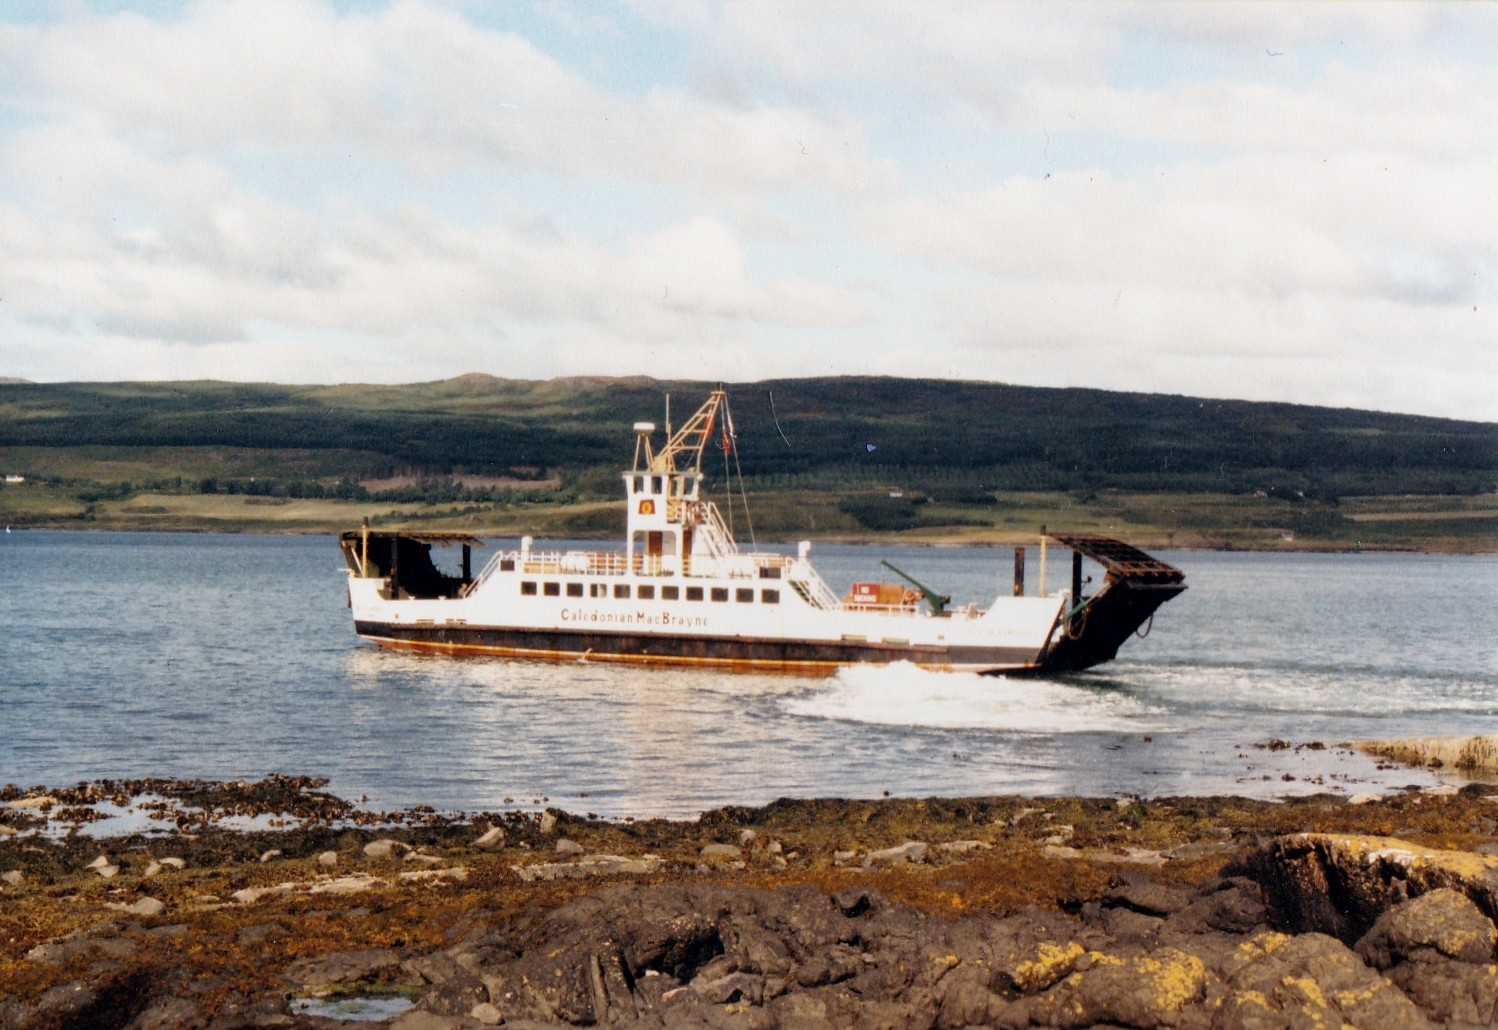 Isle of Cumbrae leaving Fishnish (Jim Aikman Smith)